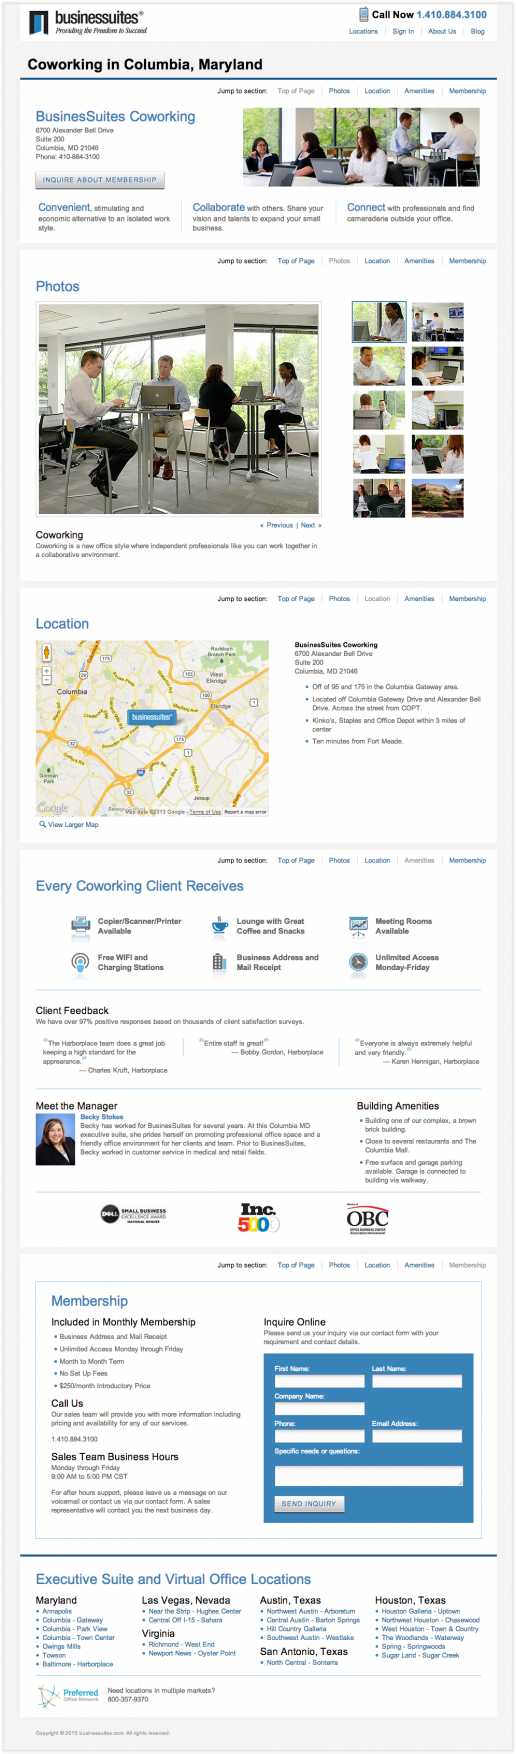 BusinesSuites Coworking Example Page 2